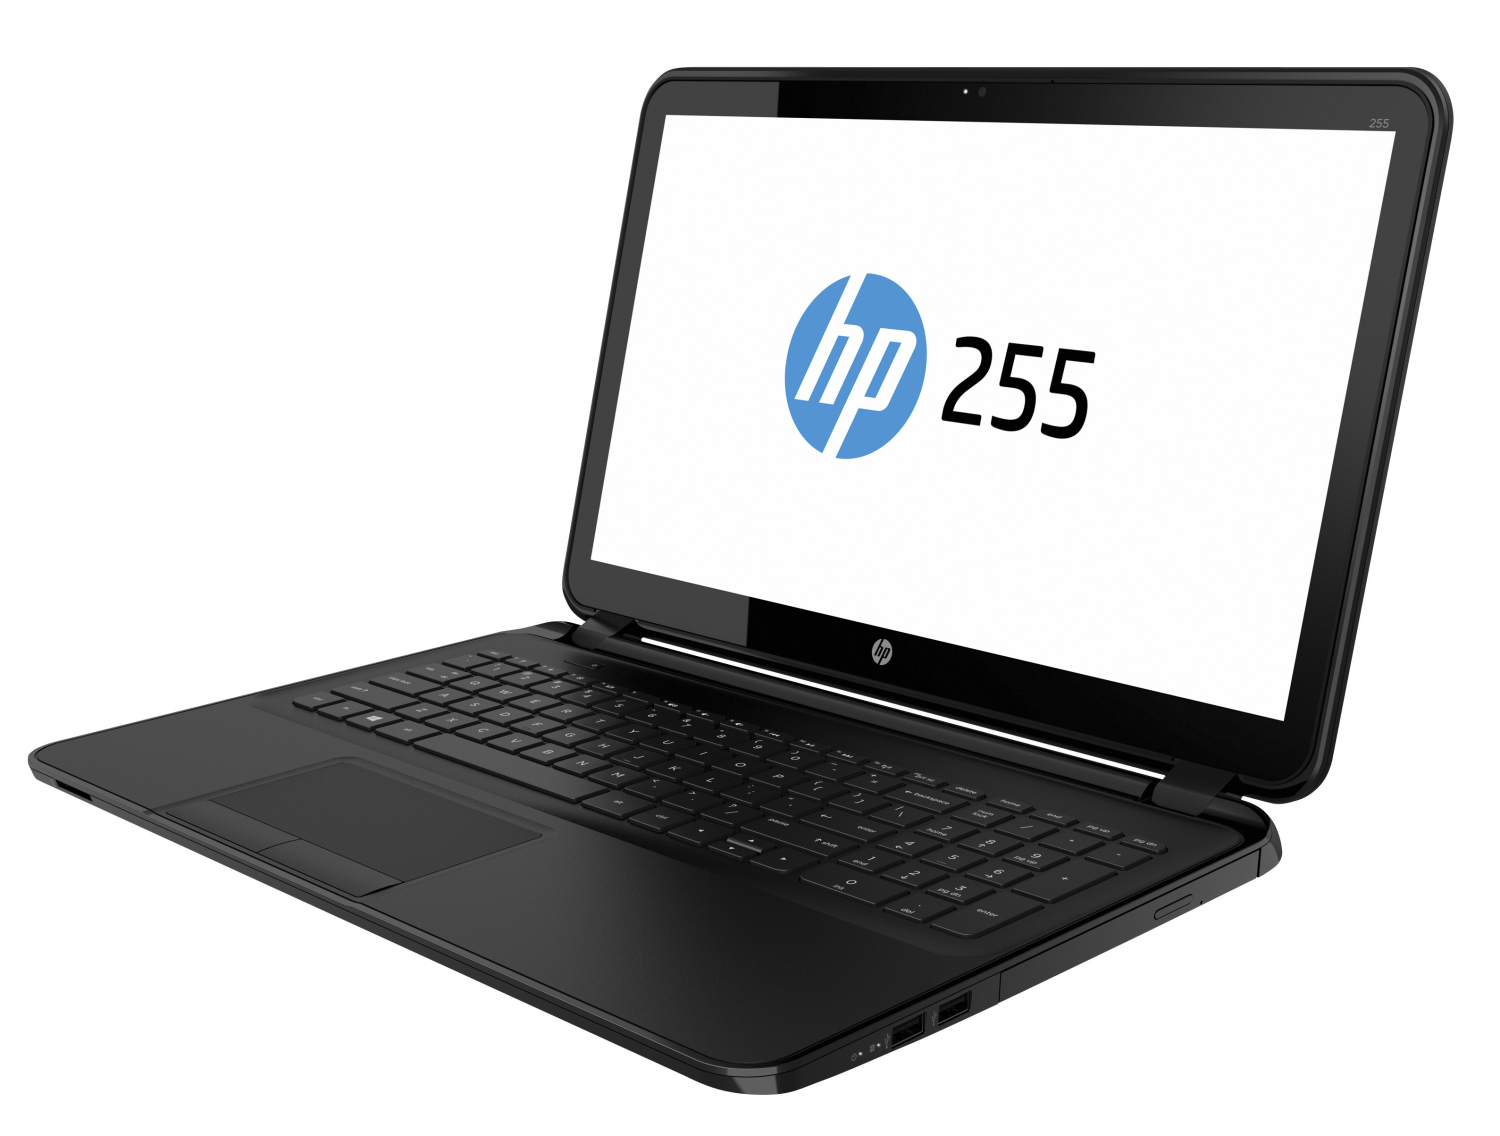 HP 255 Series - Notebookcheck.net External Reviews